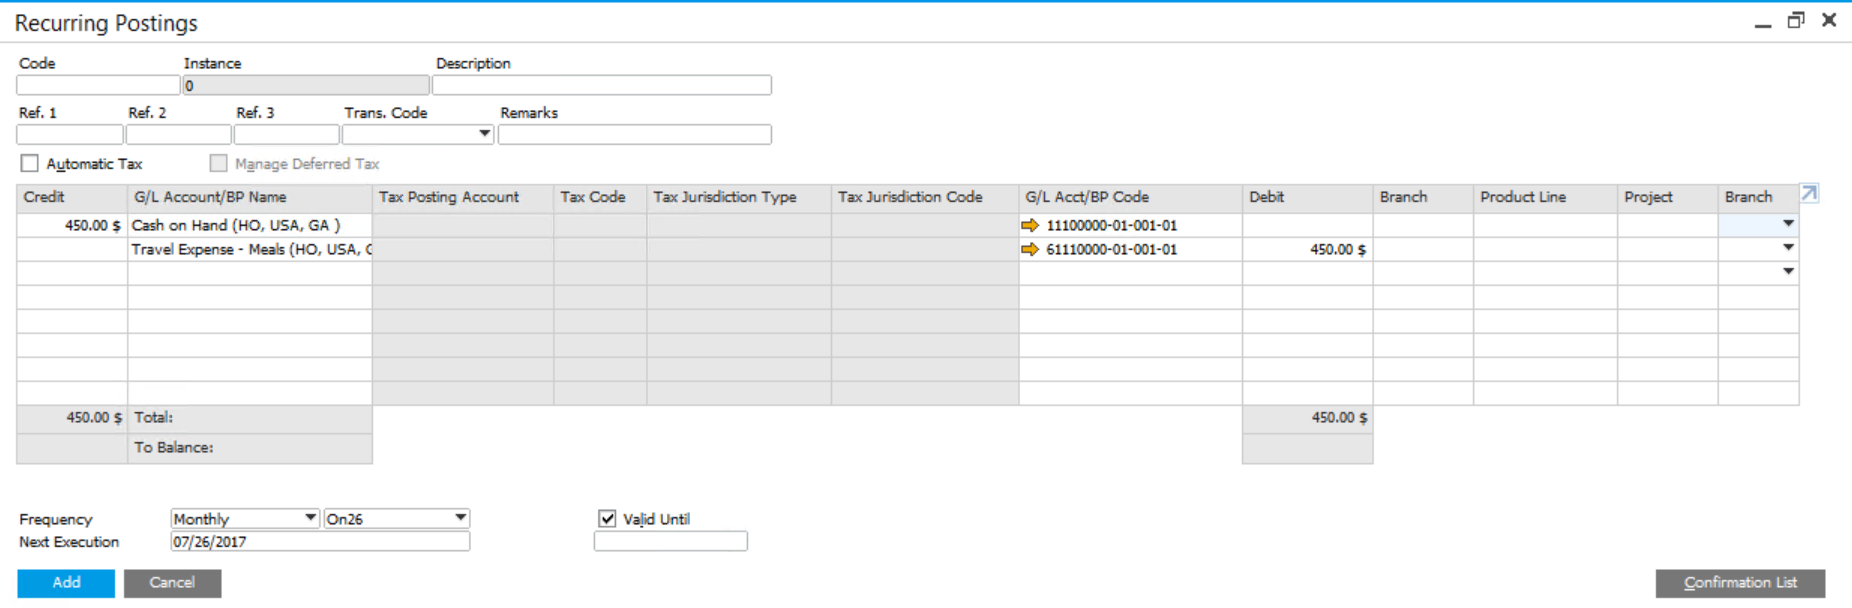 Recurring Postings in SAP Business One